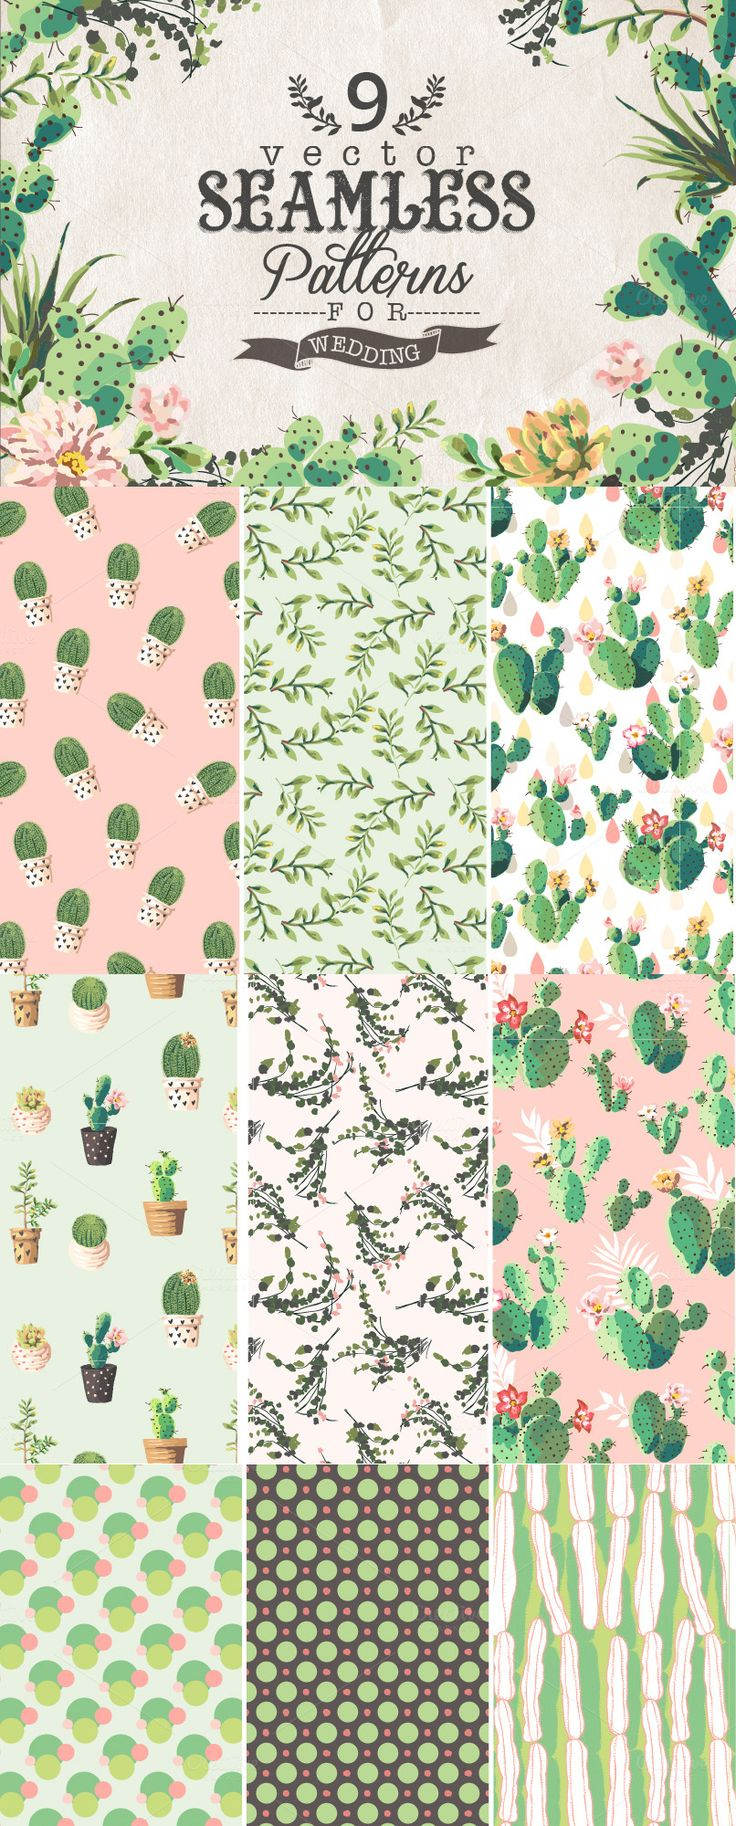 9 Vector seamless patterns by Graphic Box on Creative Market $7